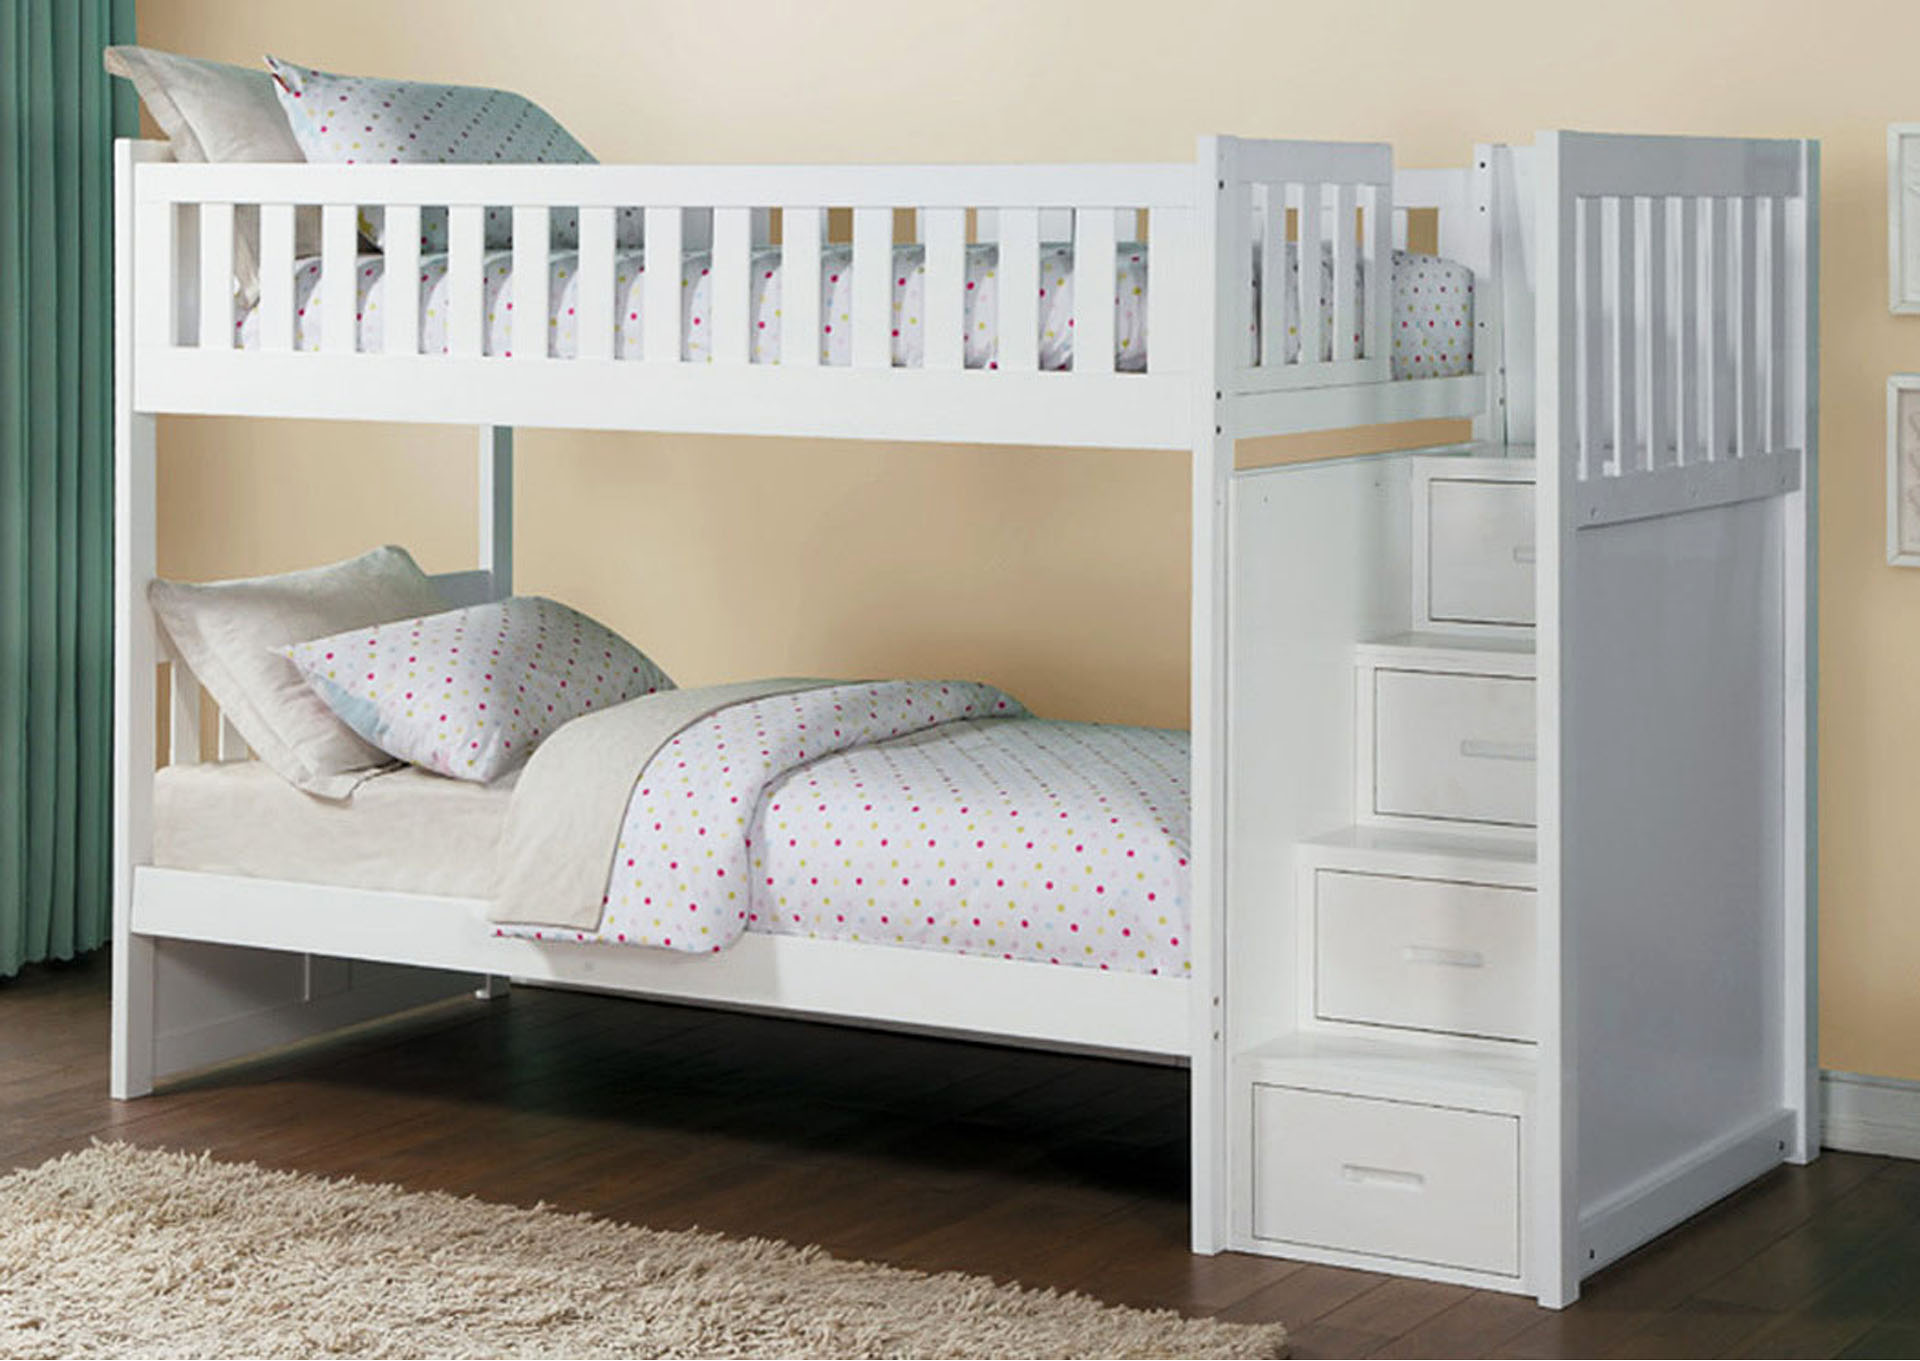 Bunk Bed w/Reversible Step Storage,Homelegance